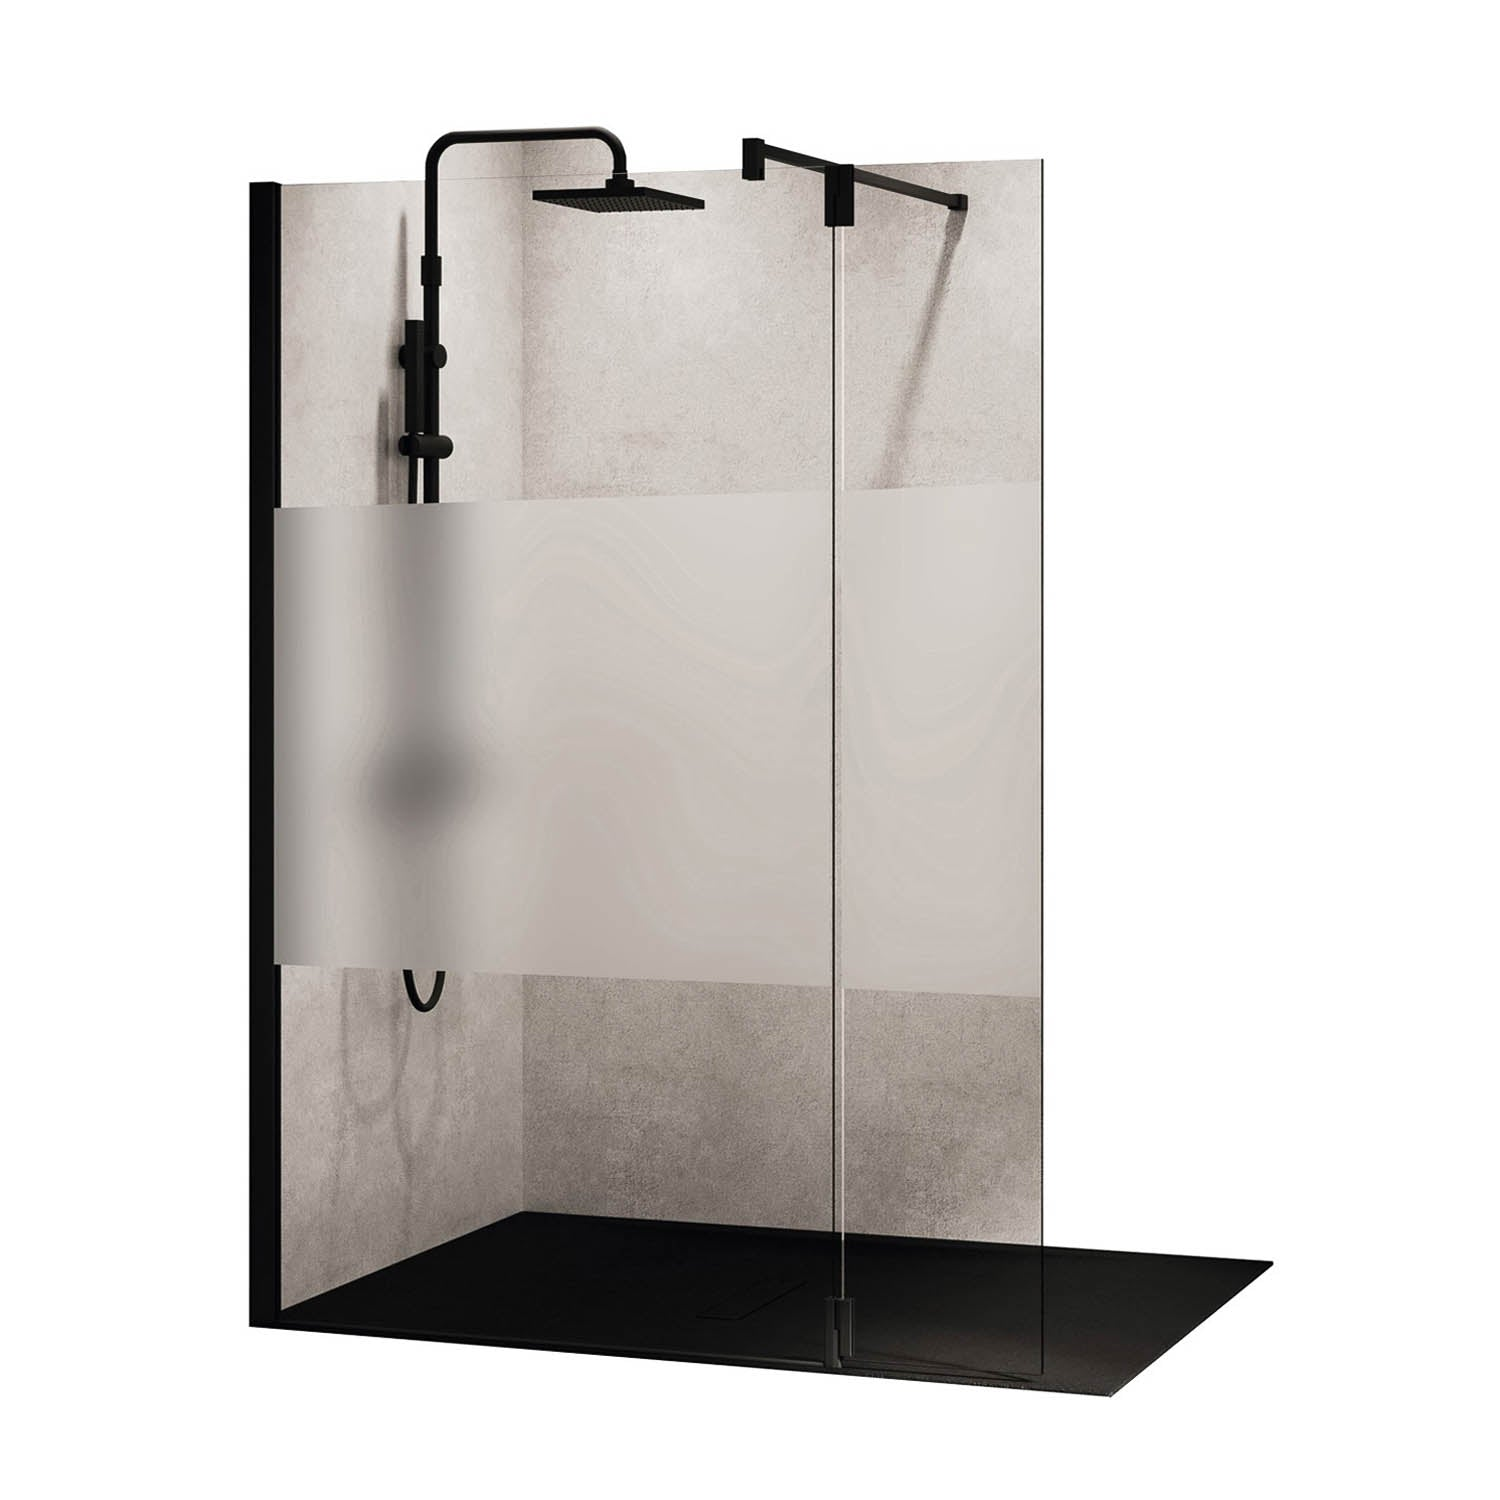 970-1000mm Ergo Wet Room Screen Satin Band Glass with a matt black finish on a white background